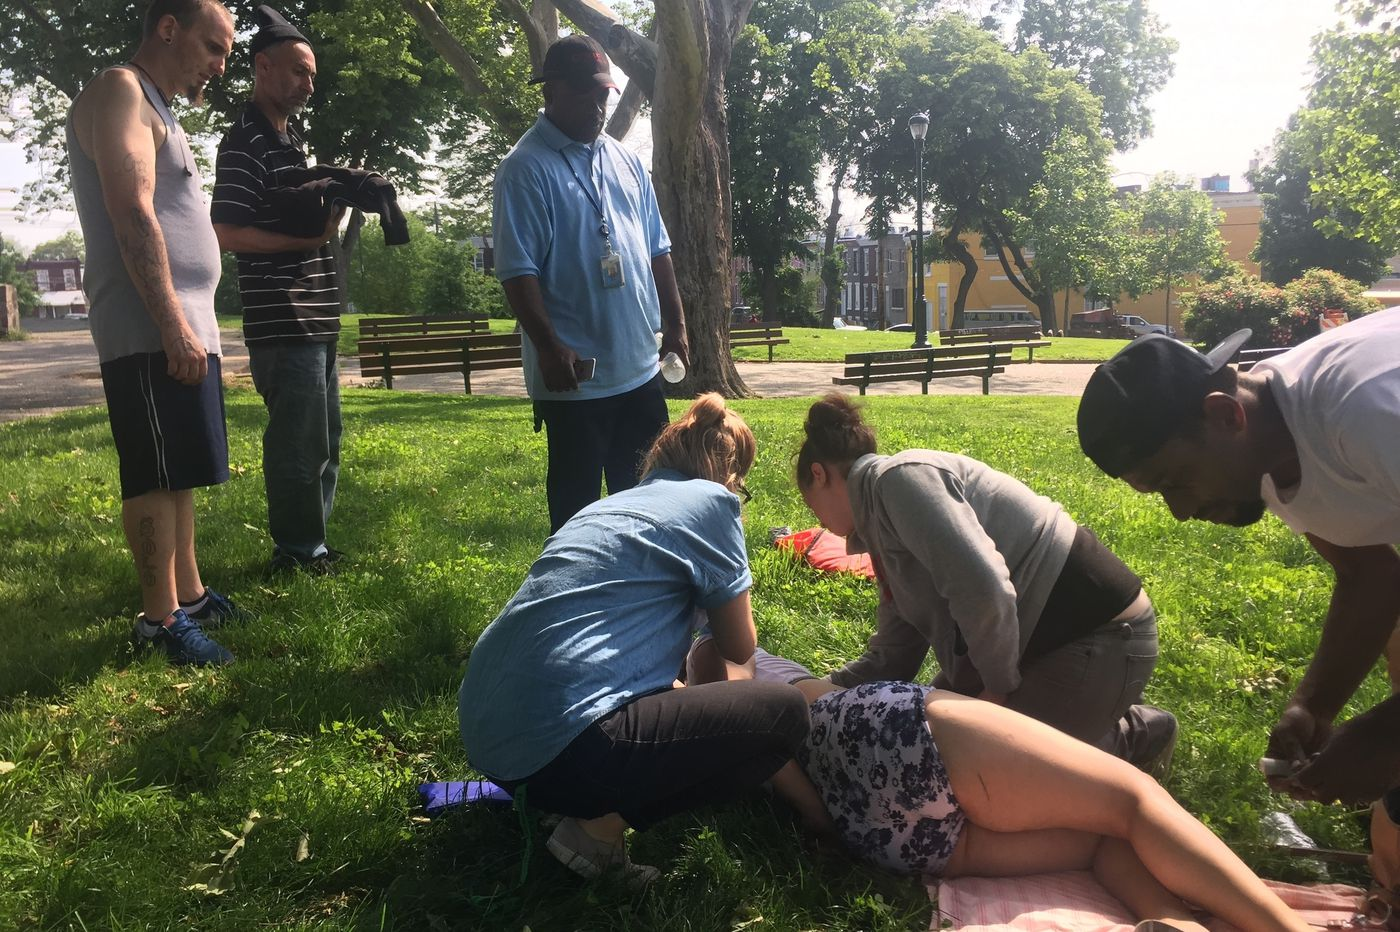 For these Philly librarians, drug tourists and overdose drills are part of the job